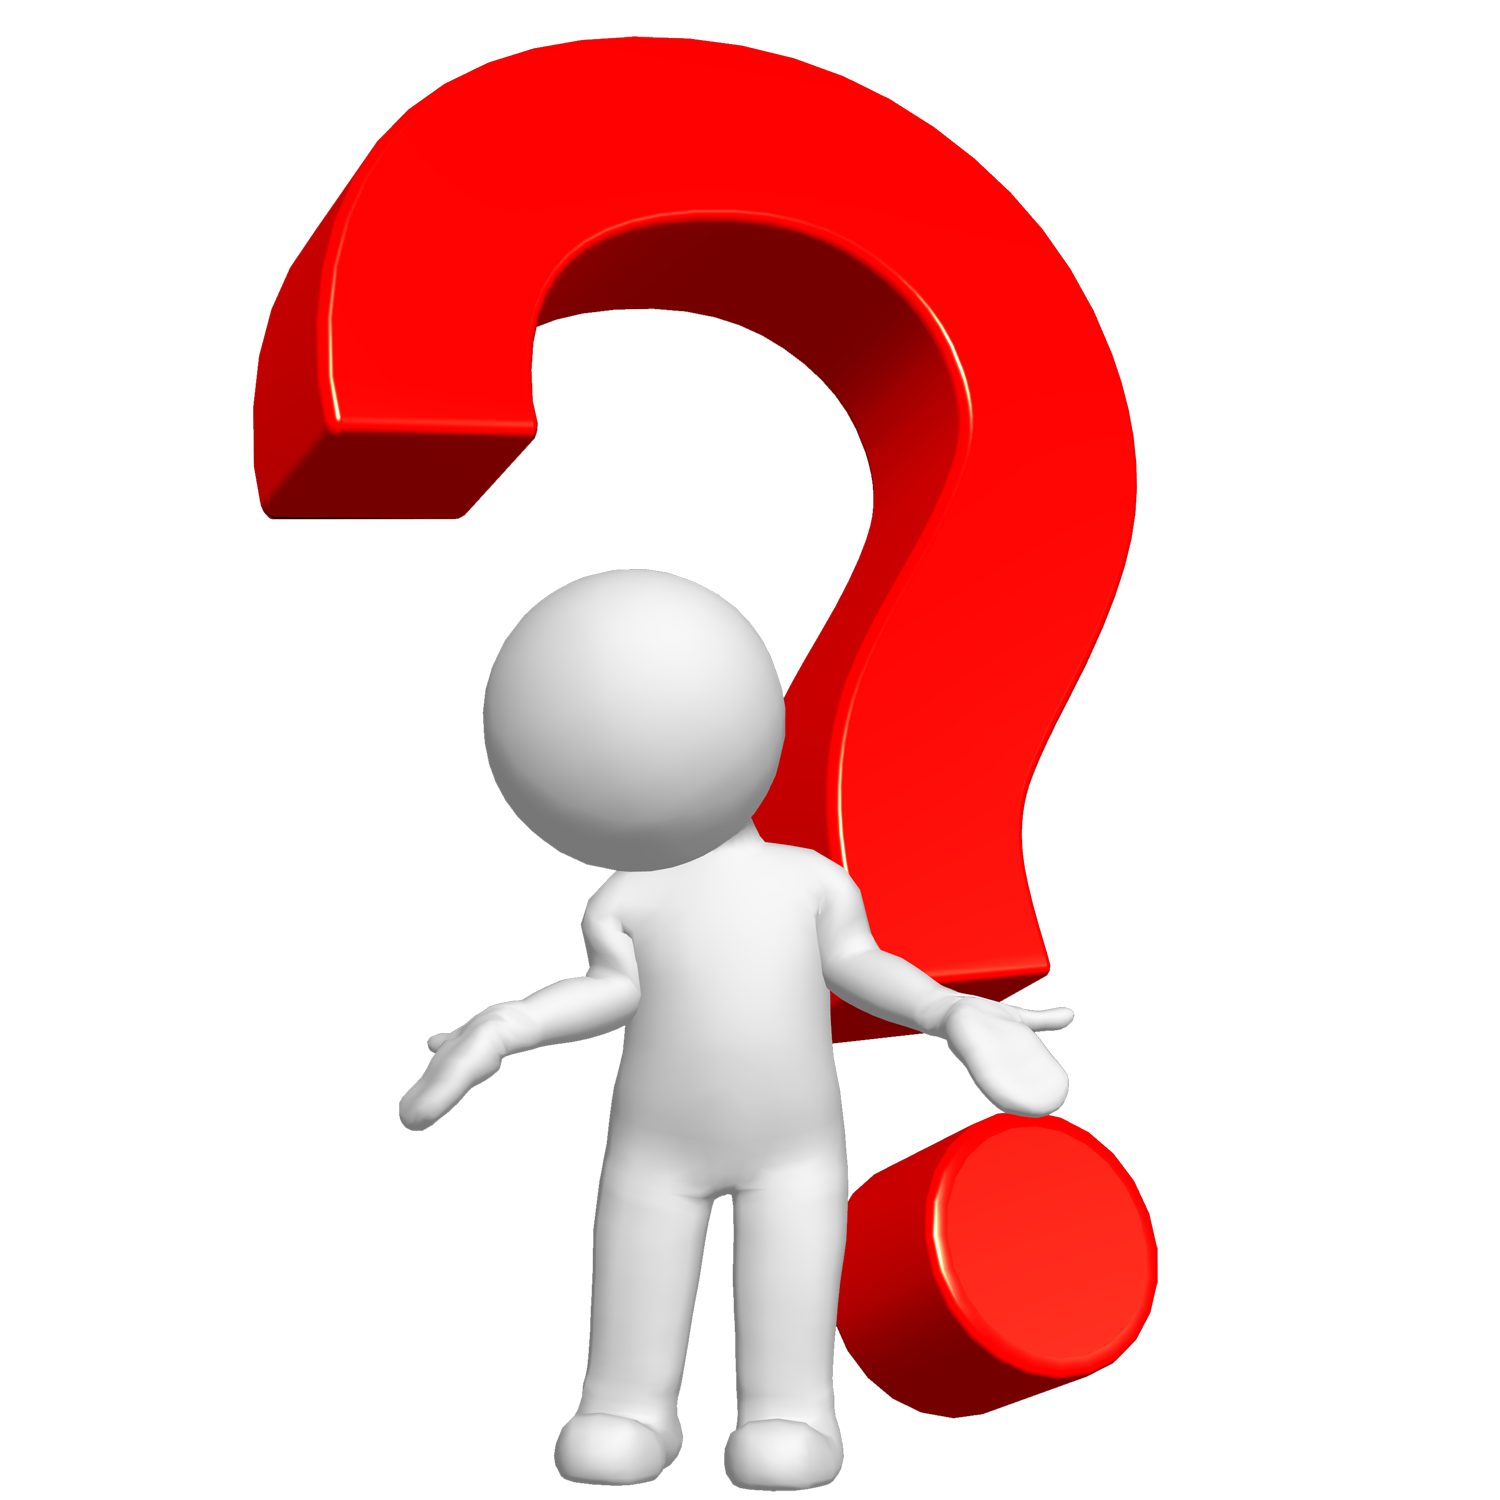 Mystery clipart mystery number. At getdrawings com free